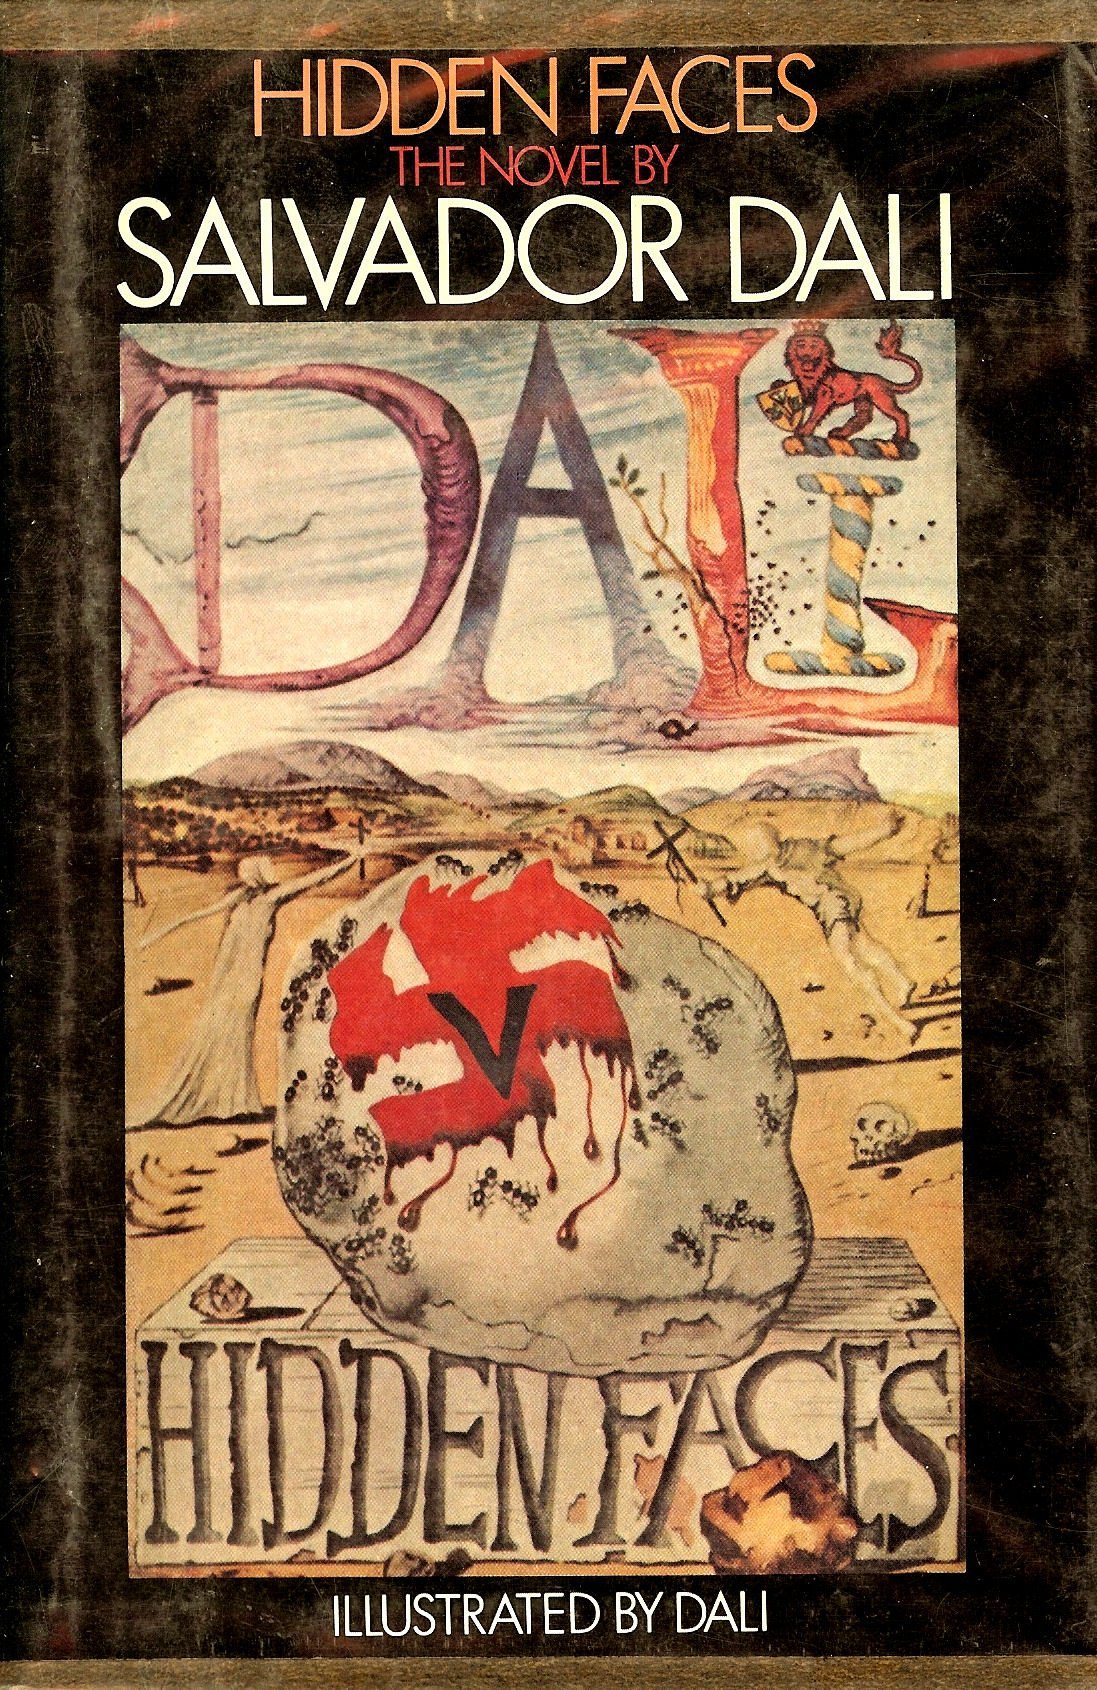 hidden faces salvador dali 本 通販 amazon